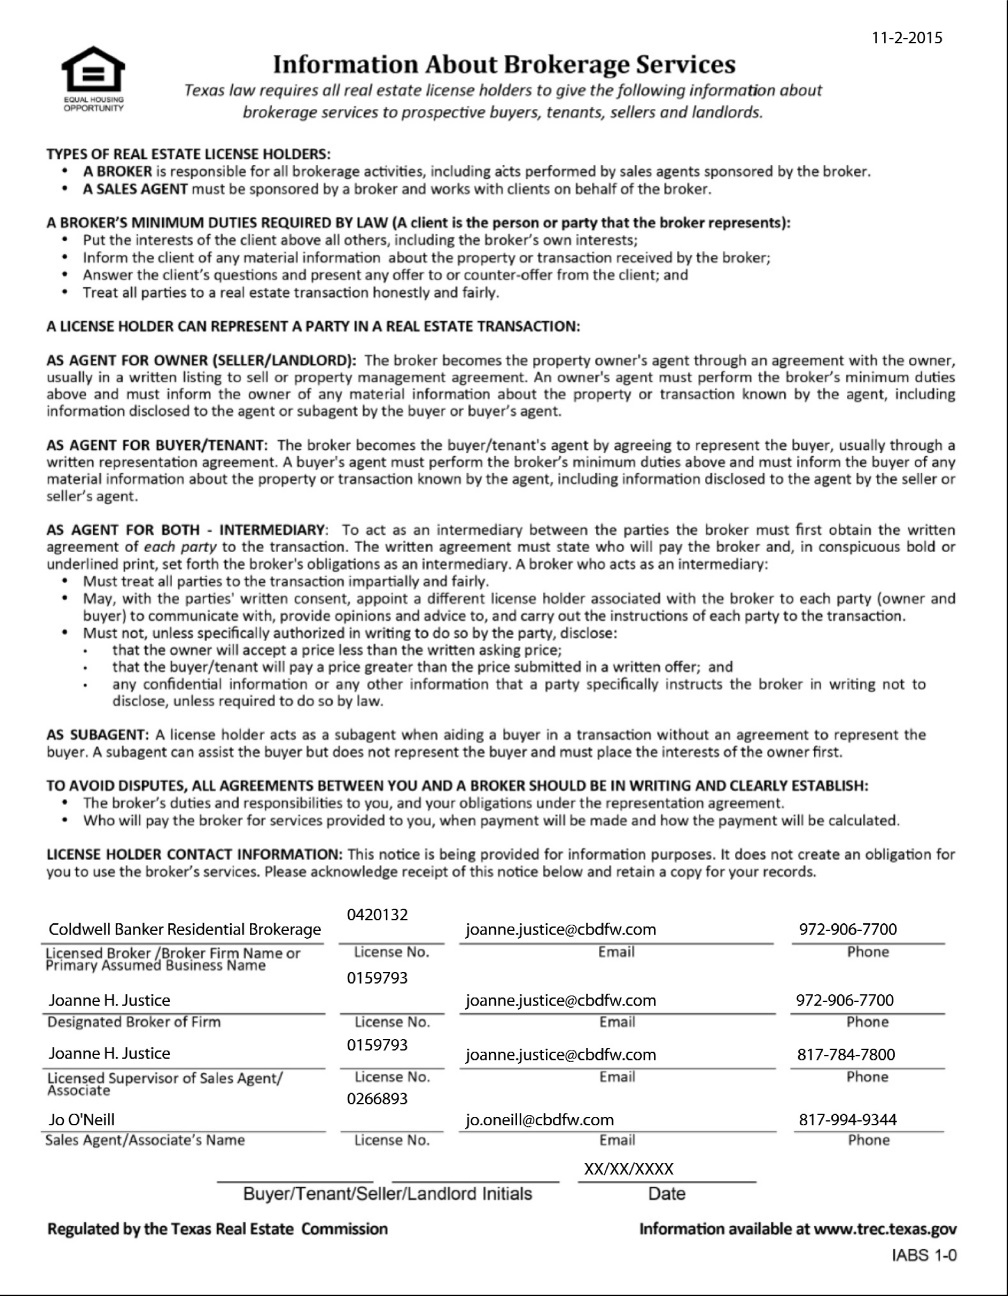 Texas Real Estate Commission (TREC) Information About Brokerage Services Form-30